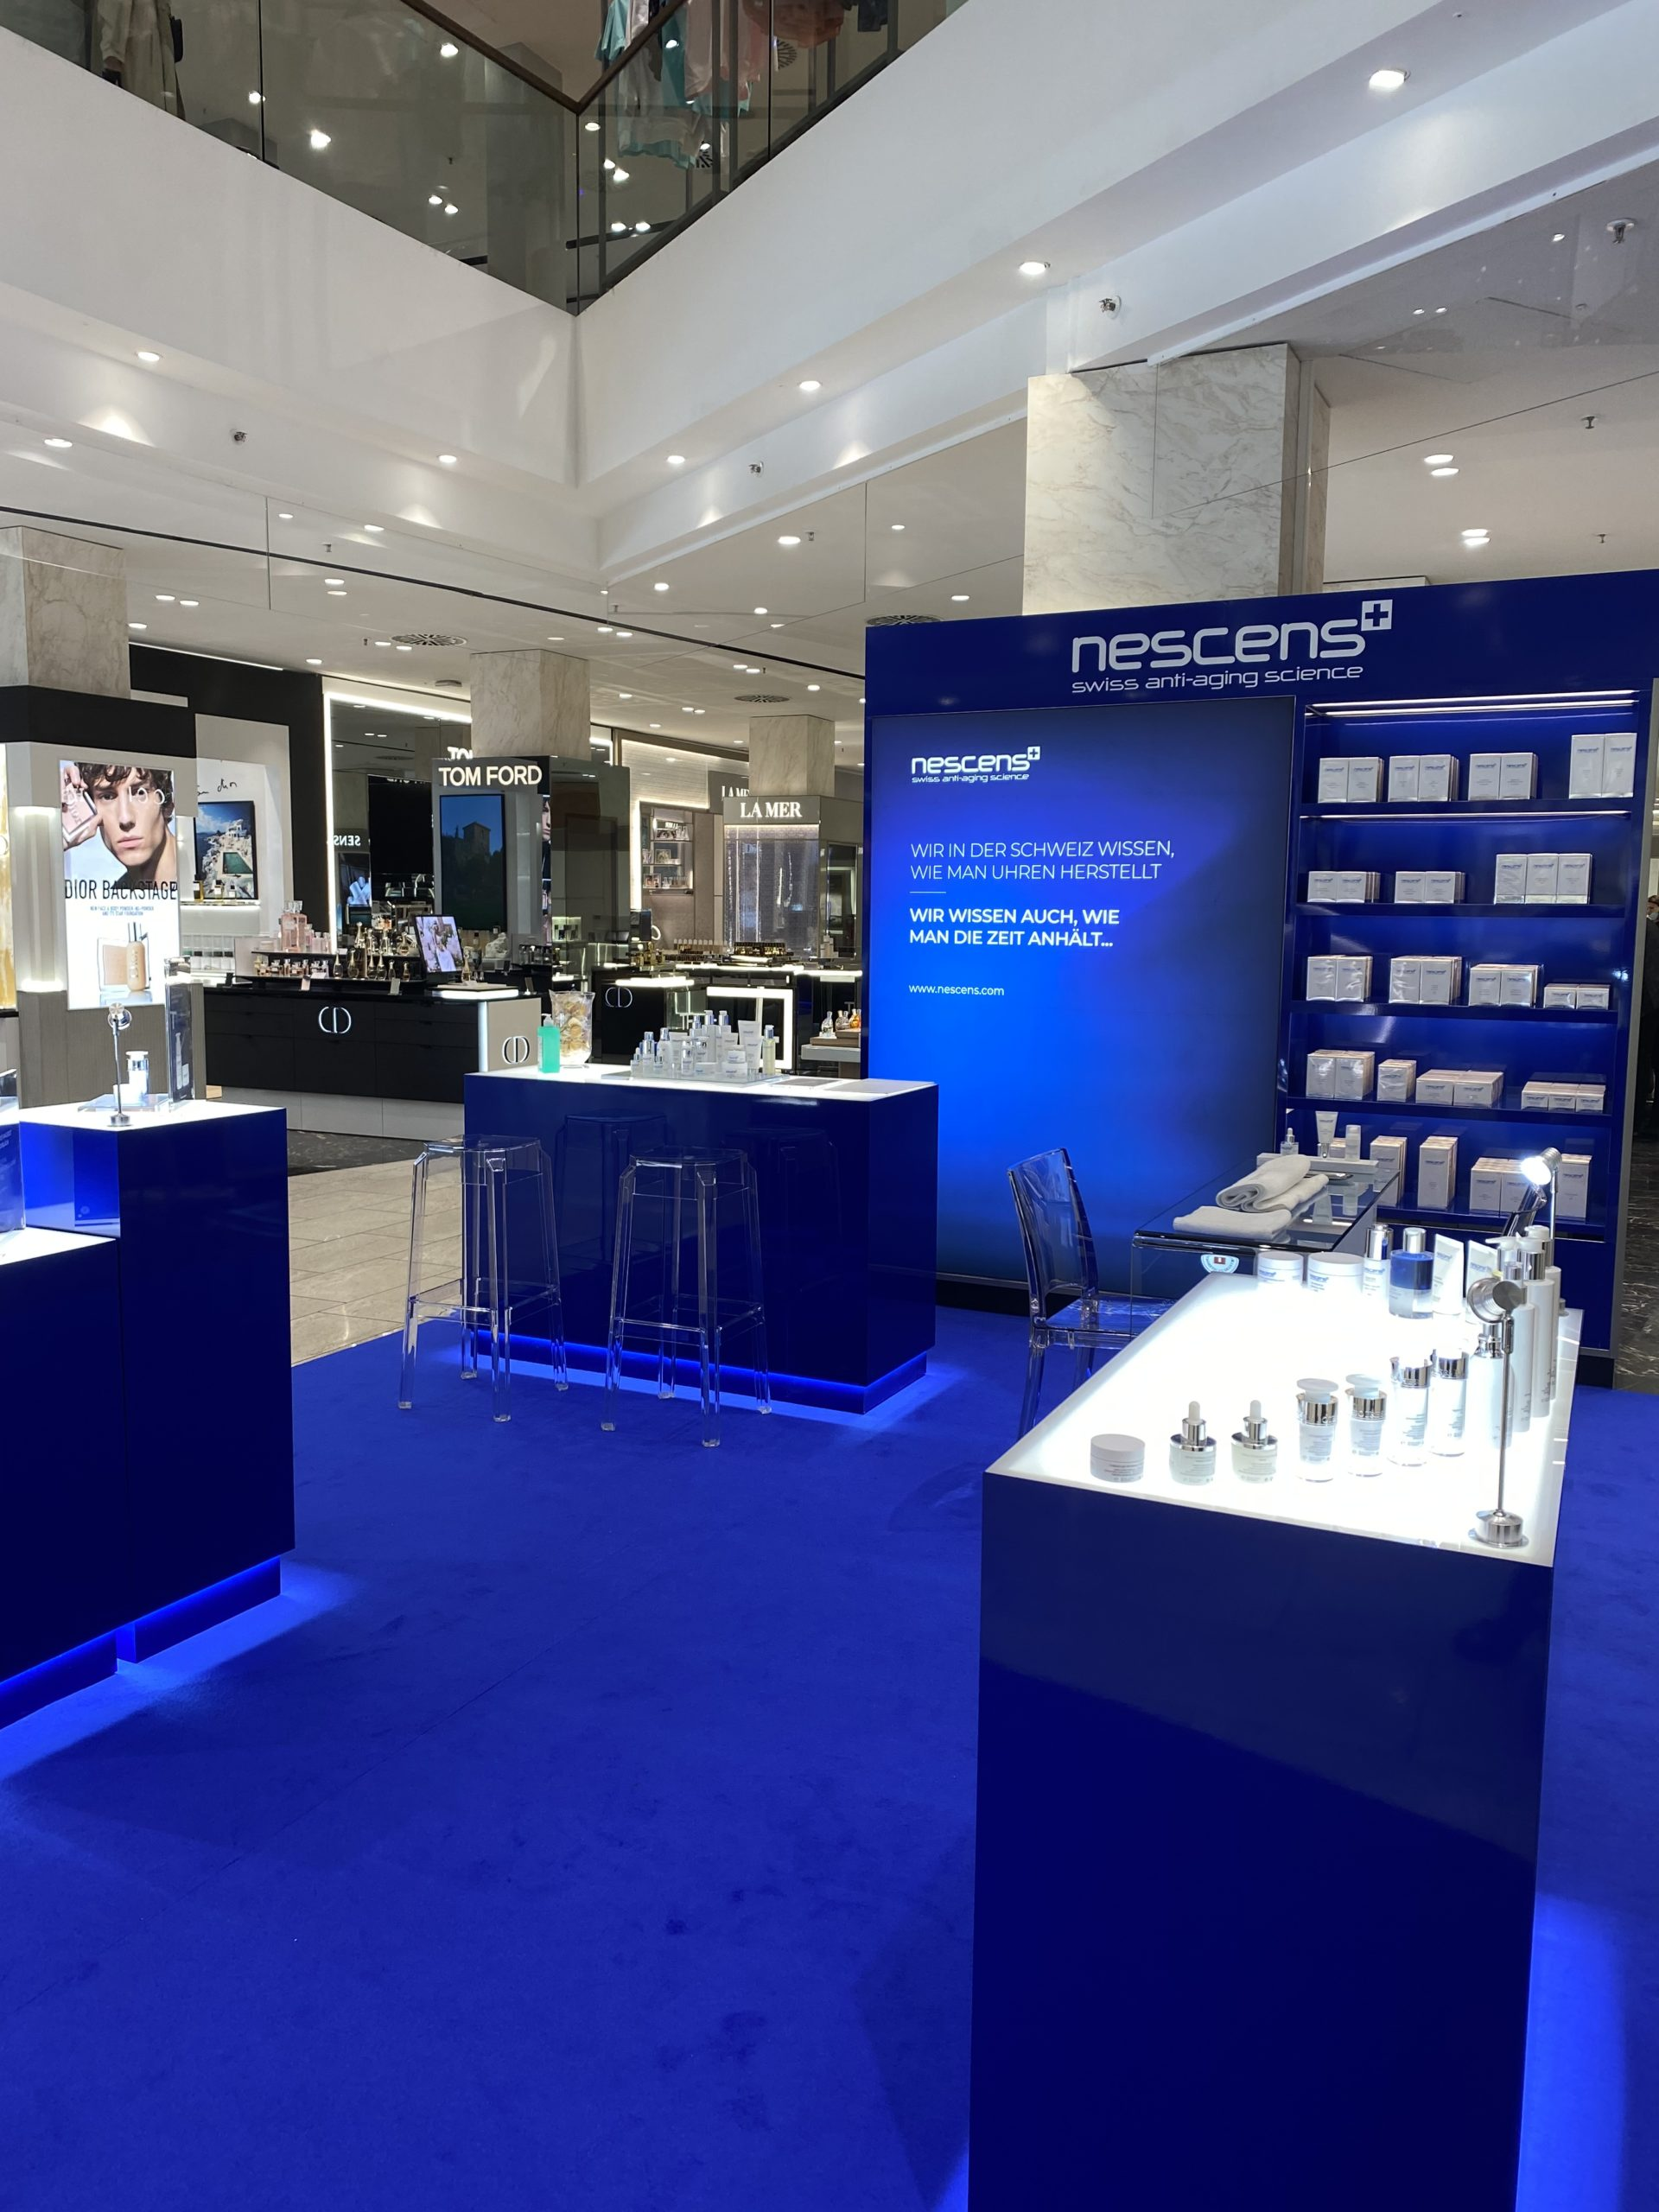 Nescens counter in the luxurious Department store Jelmoli in Zurich